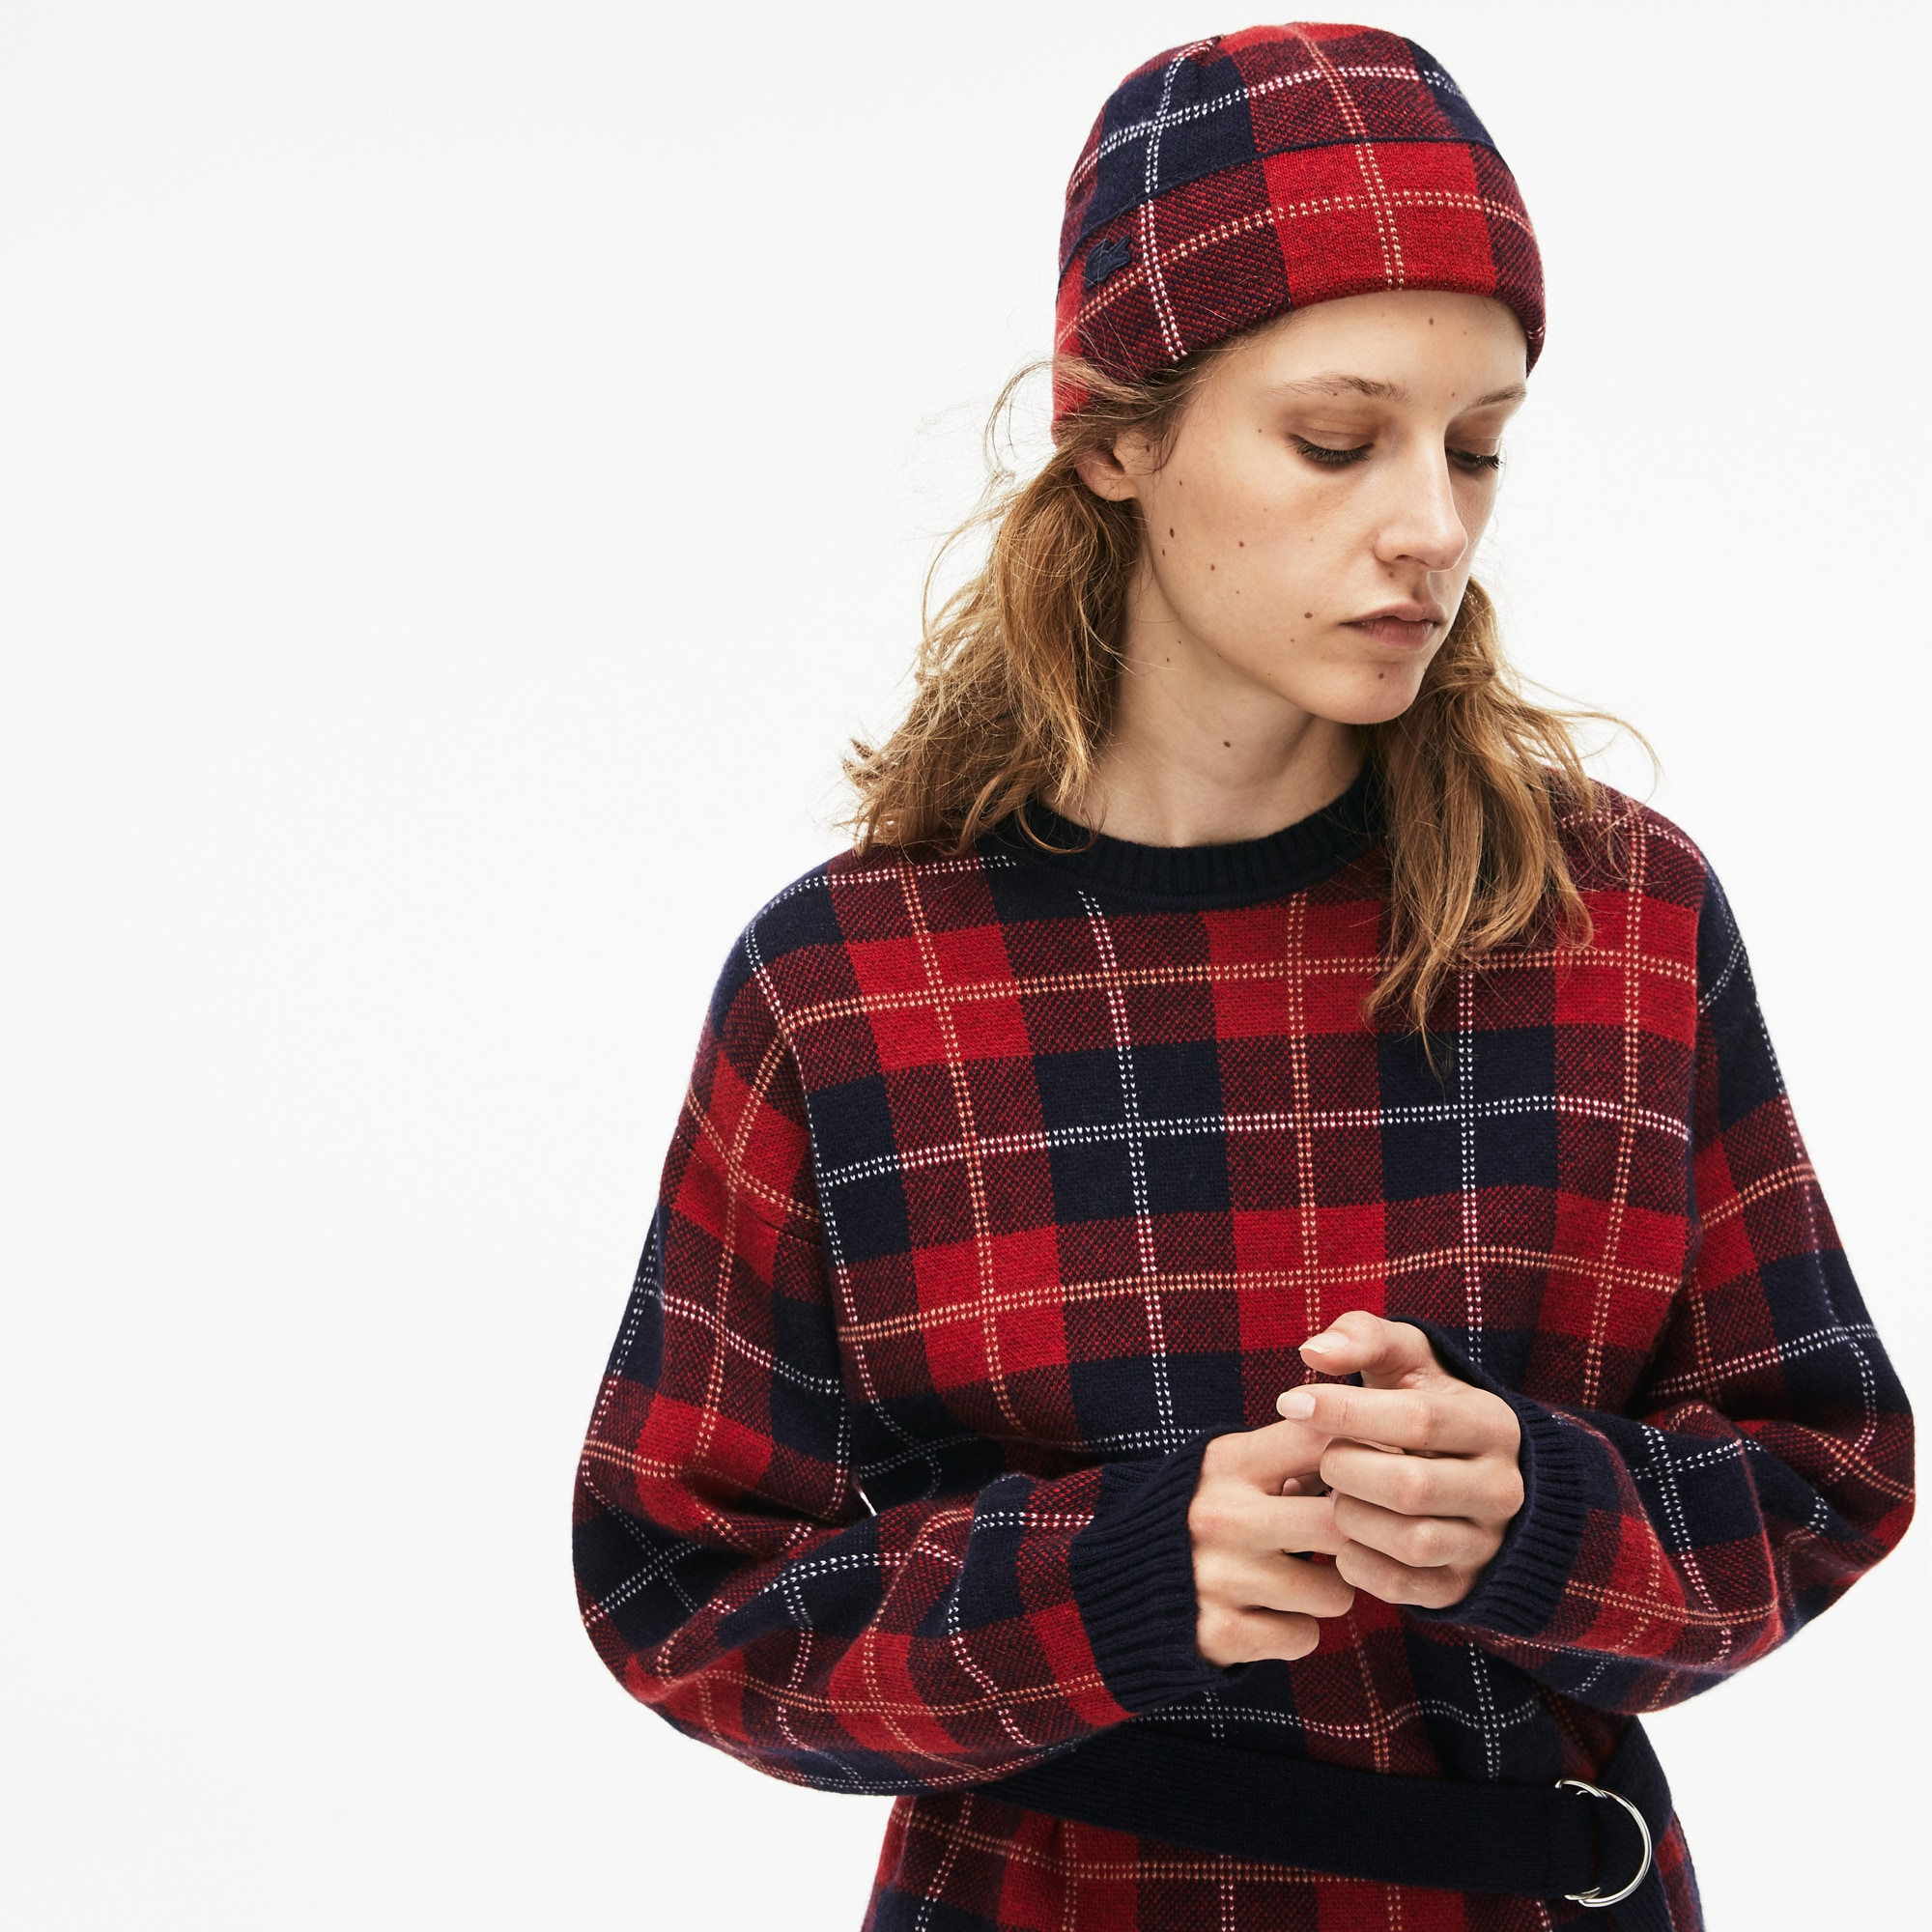 Women's Stand-Up Neck Tartan Check Print Wool Jacquard Sweater